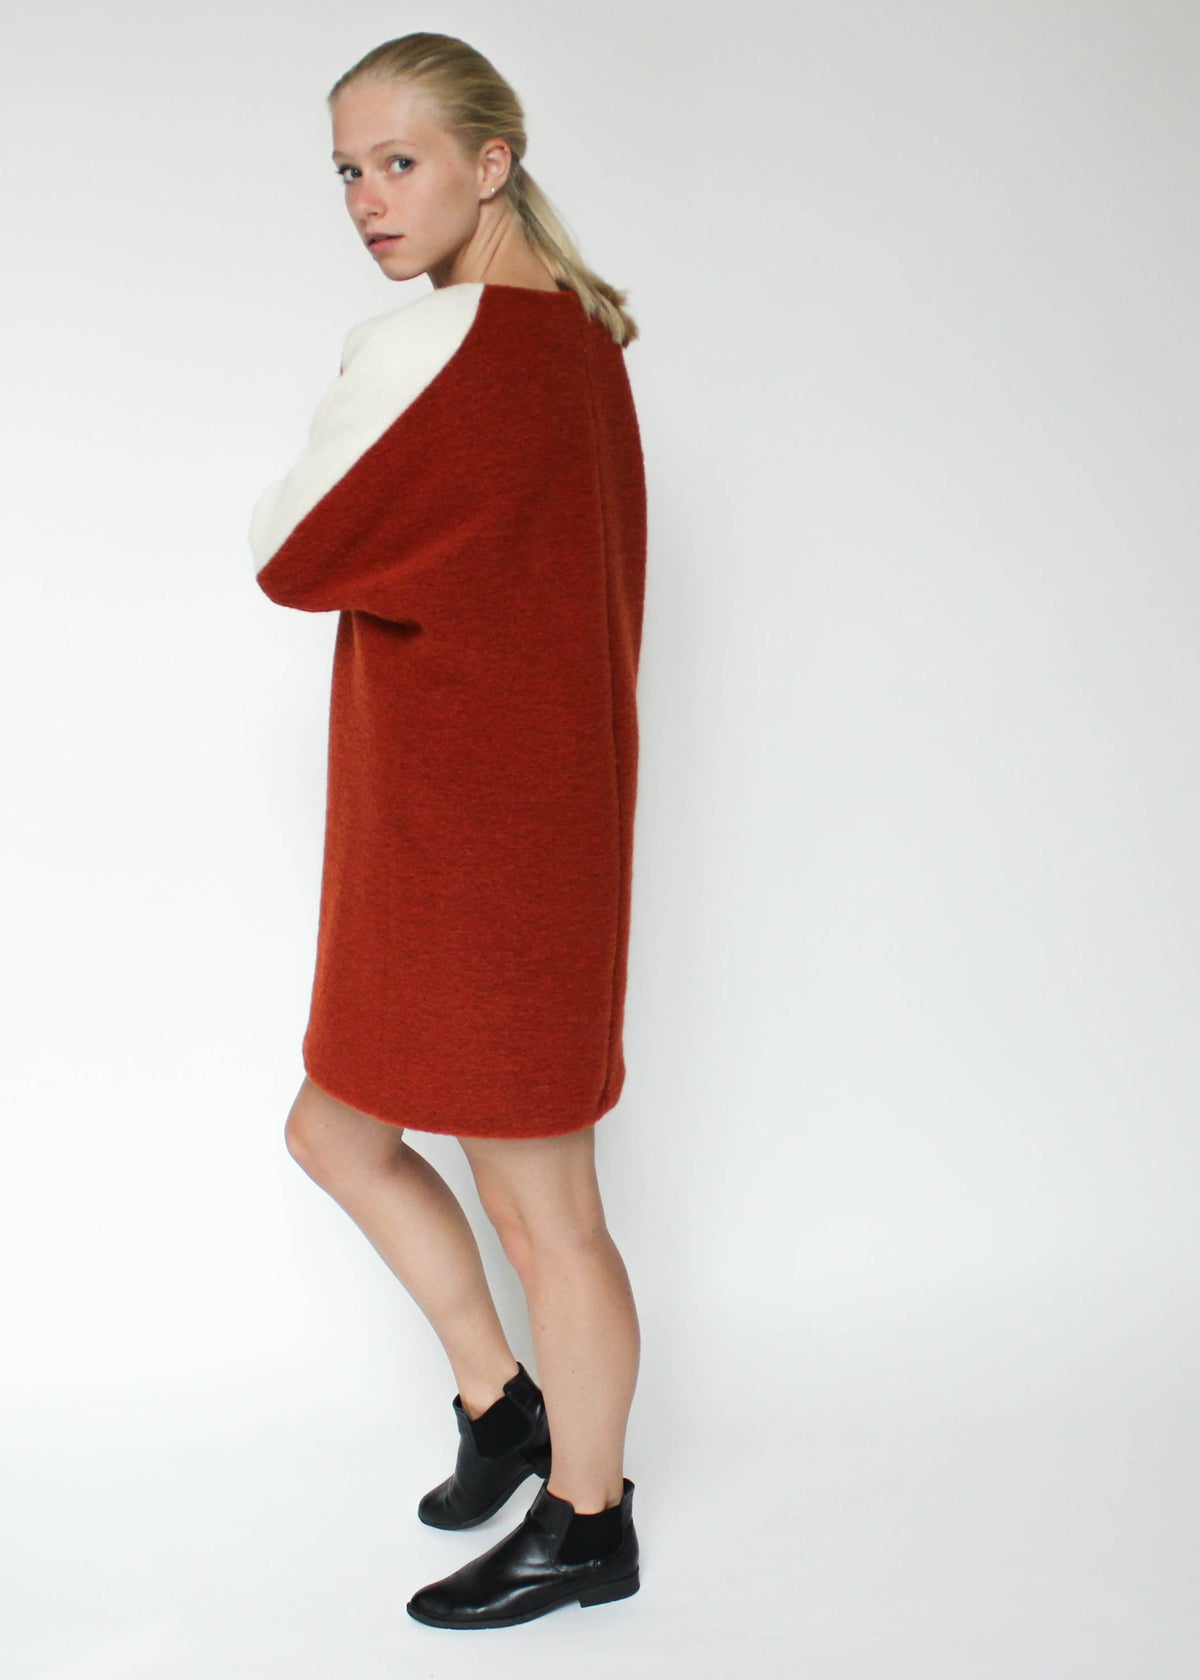 Ripple Wool Dress